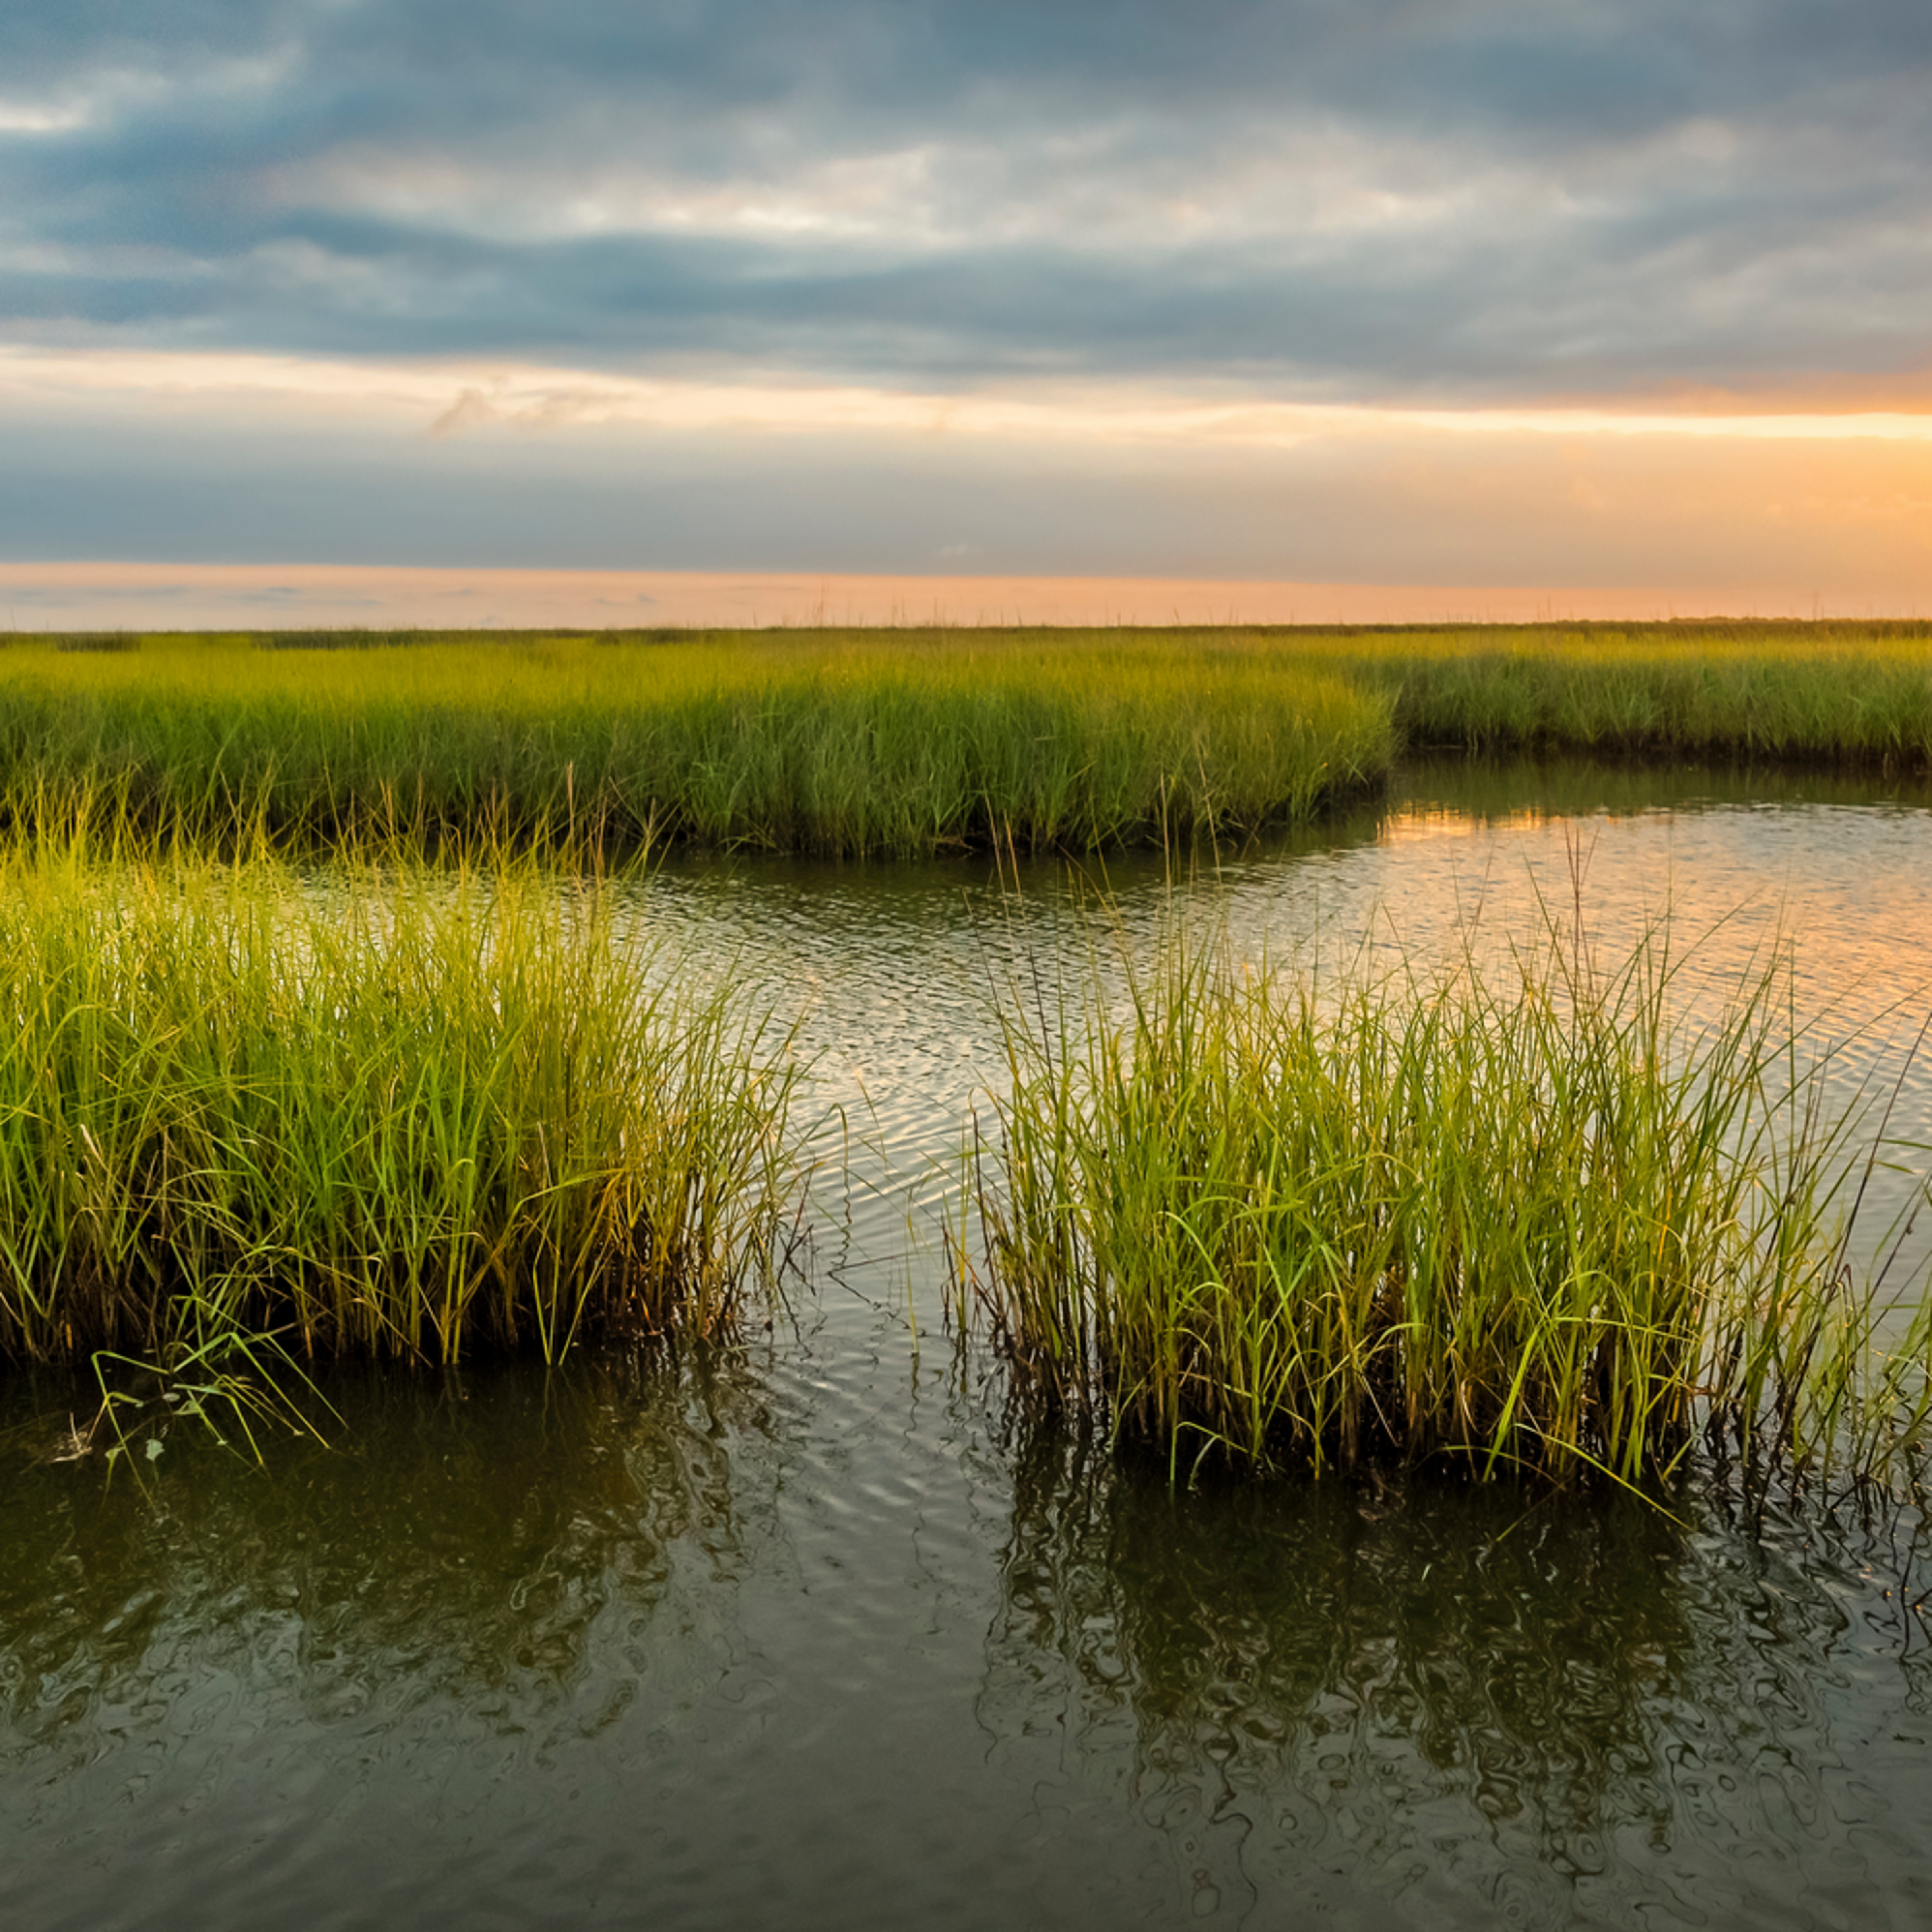 Andy crawford photography pointe aux chenes wma 0516 1 szgdux